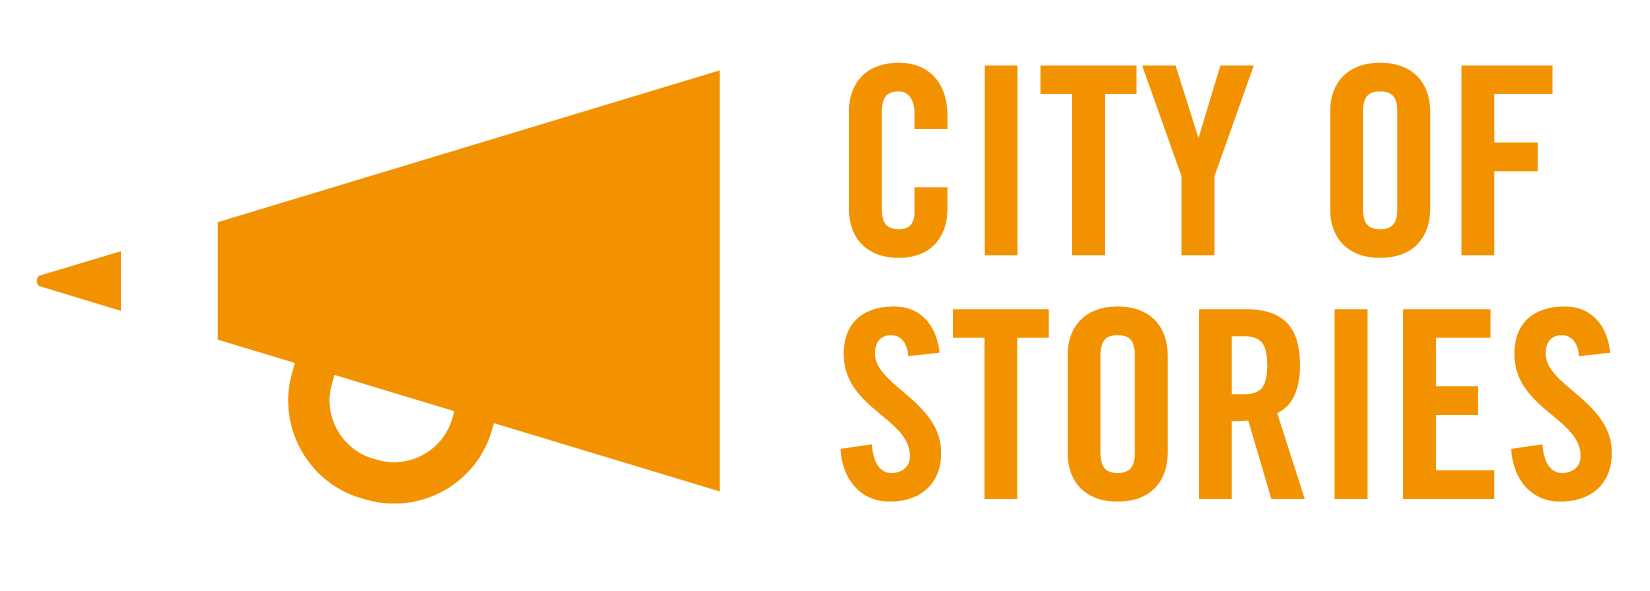 StW-CityOfStories-Logo-Orange-Smaller-BG.png